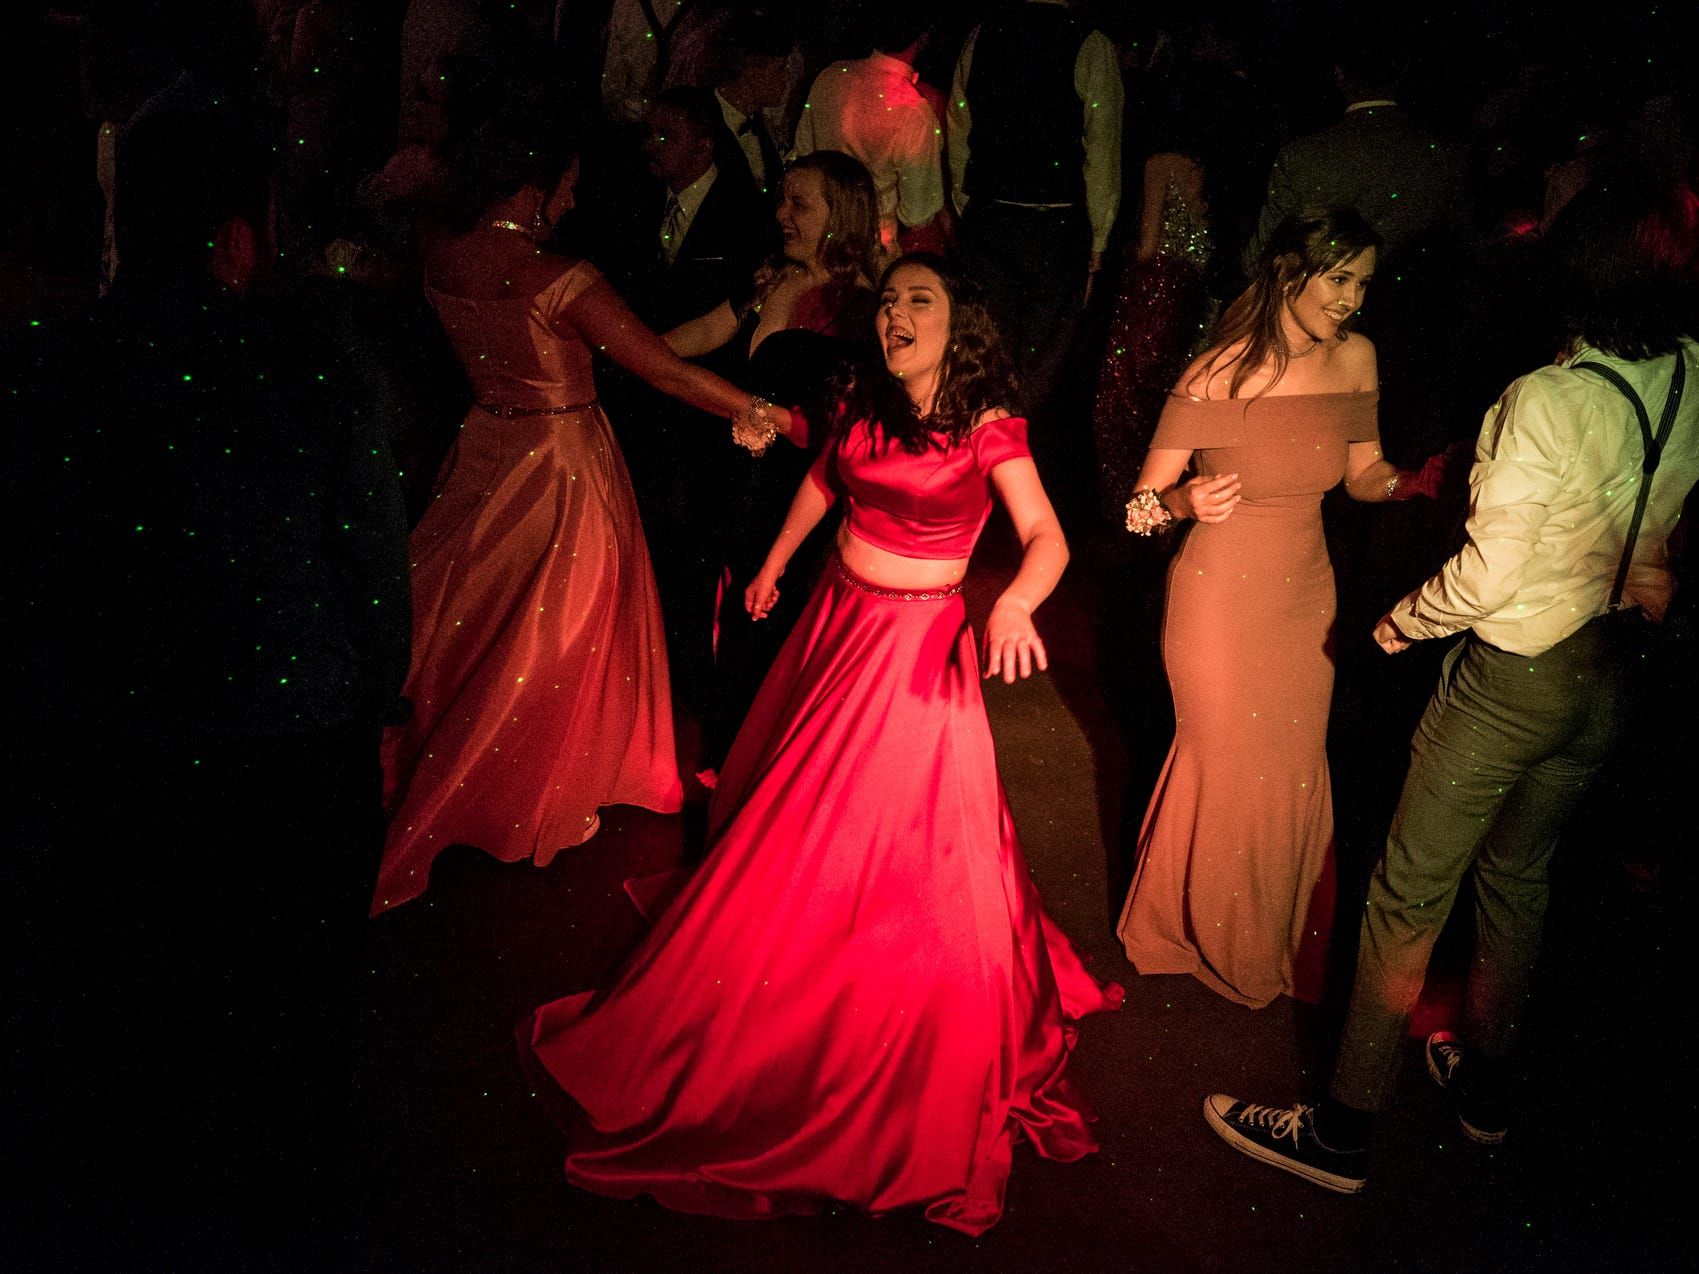 """Raya O'Brien, center, sings along to the song """"Bodak Yellow by Cardi B on the dance floor during Central High School's """"Uptown Night"""" themed prom held at the Vanderburgh 4-H Center auditorium in Evansville, Ind., Saturday, April 27, 2019."""